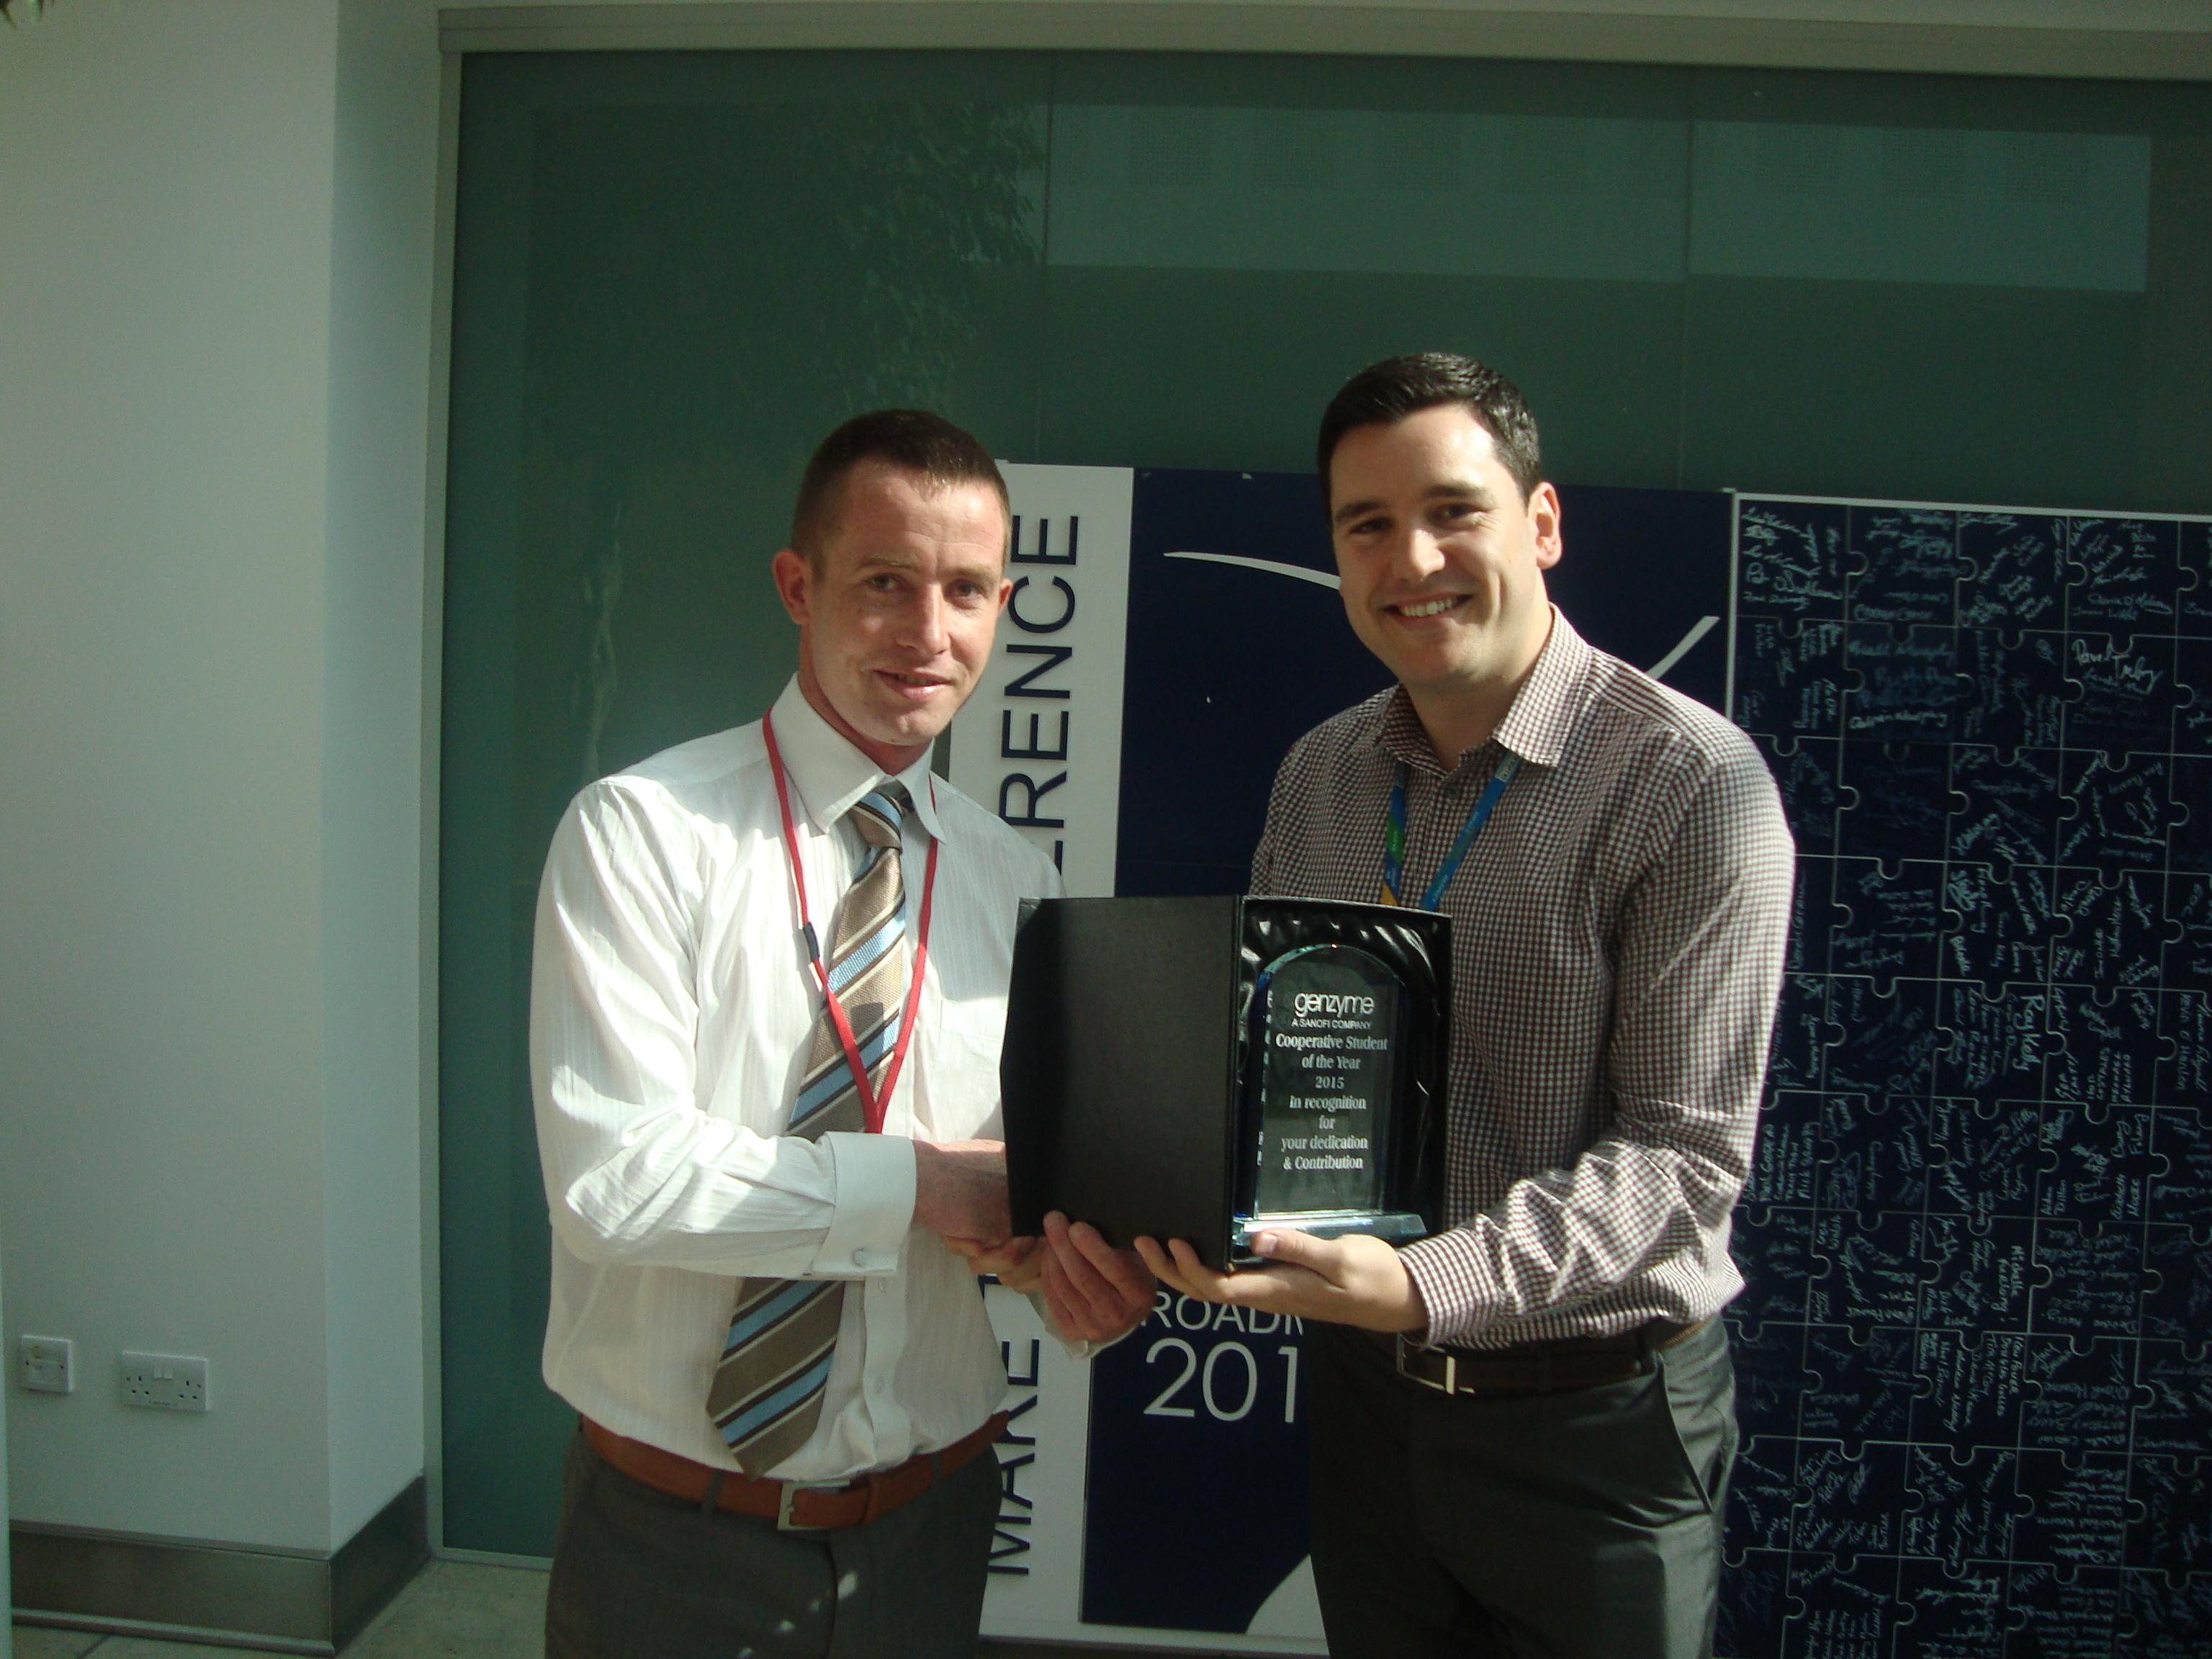 Pictured from left is WIT student Maurice Foley receiving his award from Stephen Rose Human Resources Business Partner at Genzyme